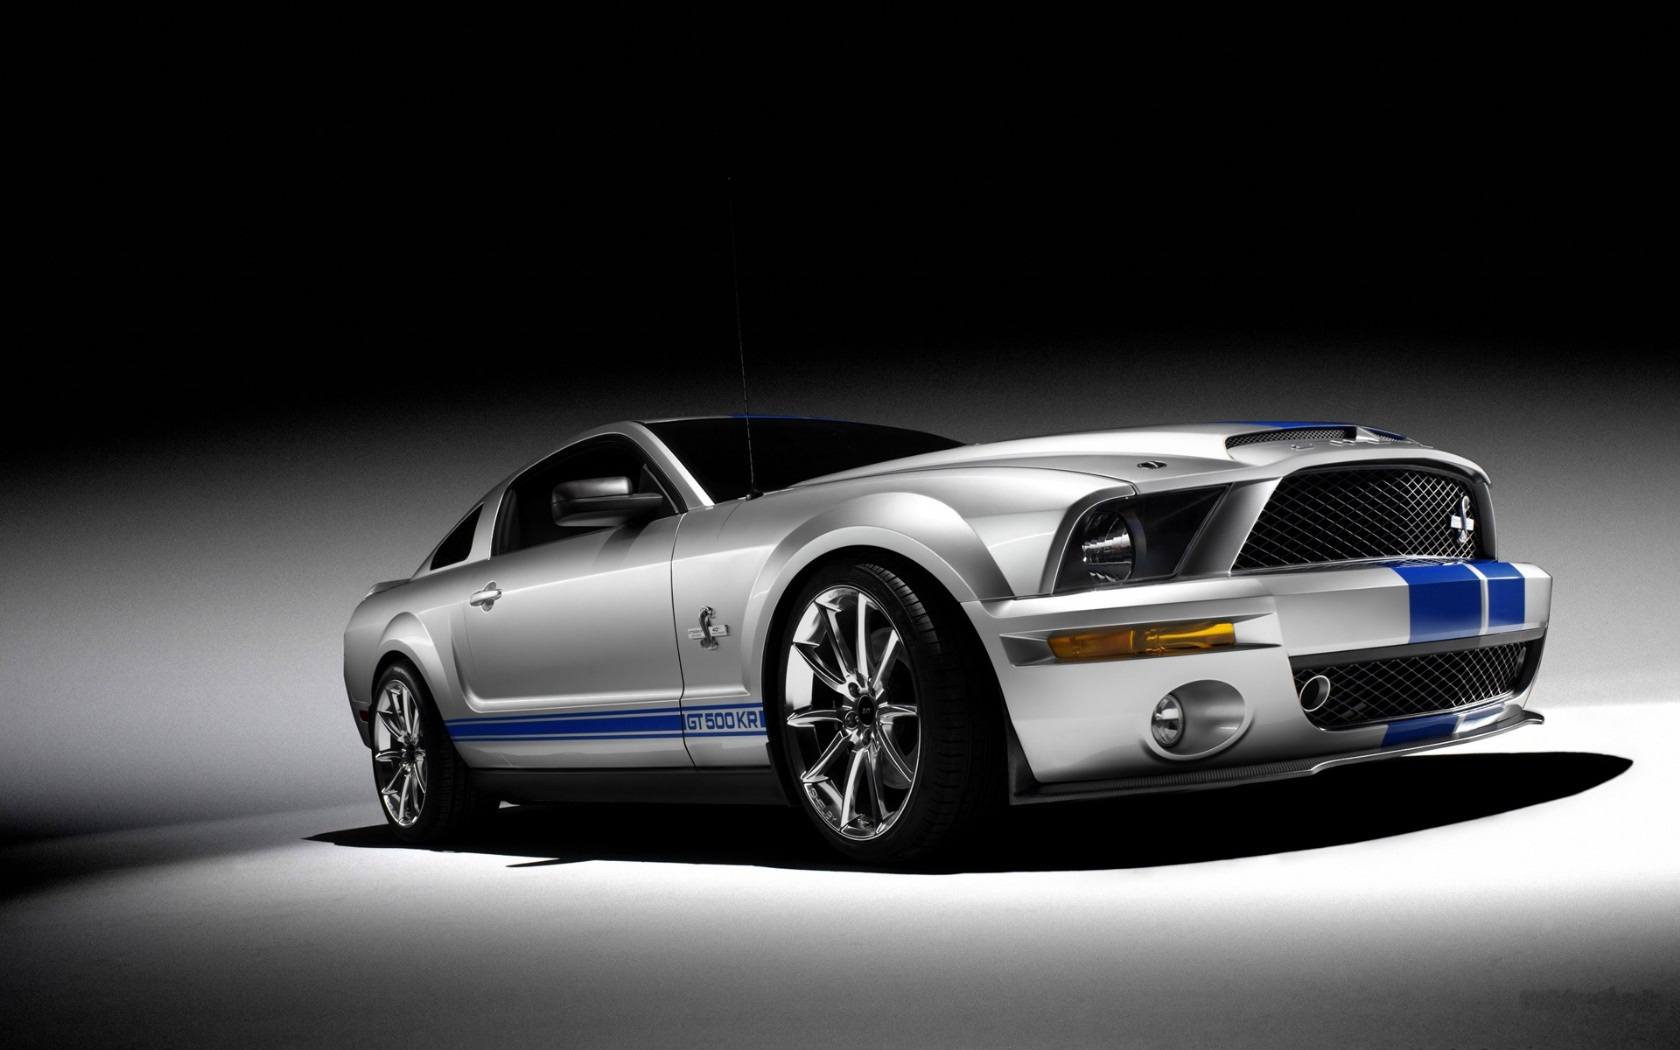 ford ford mustang desktop wallpaper hd auto car wallpapersjpg 1680x1050